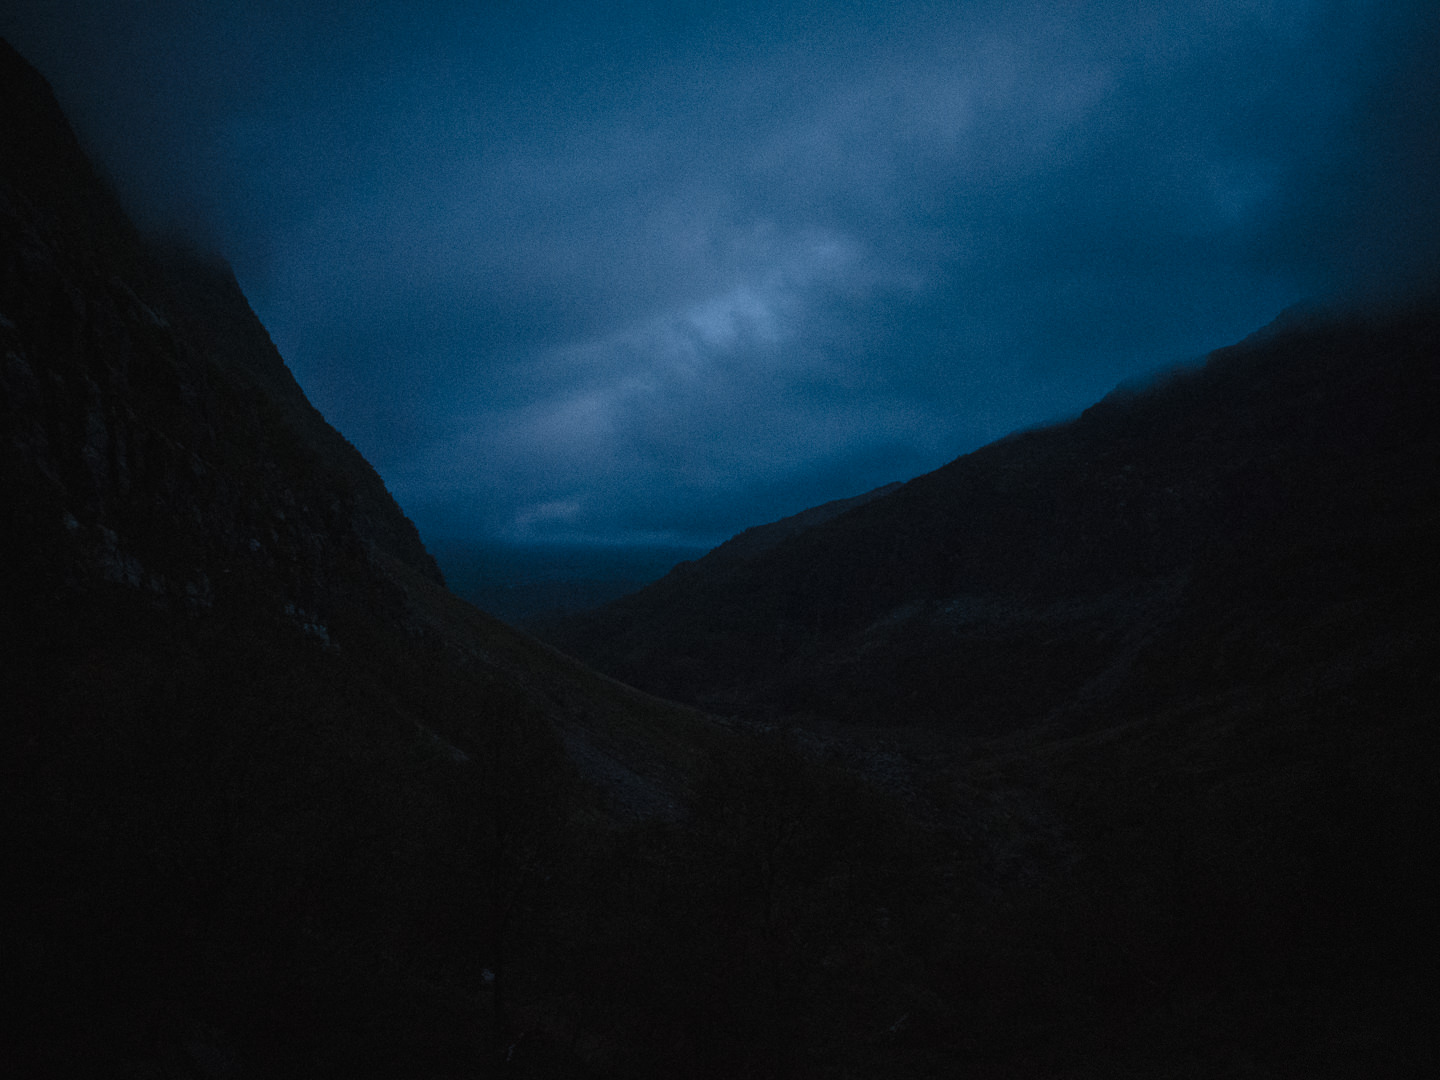 Mountain landscape, just barely visible in the dark.